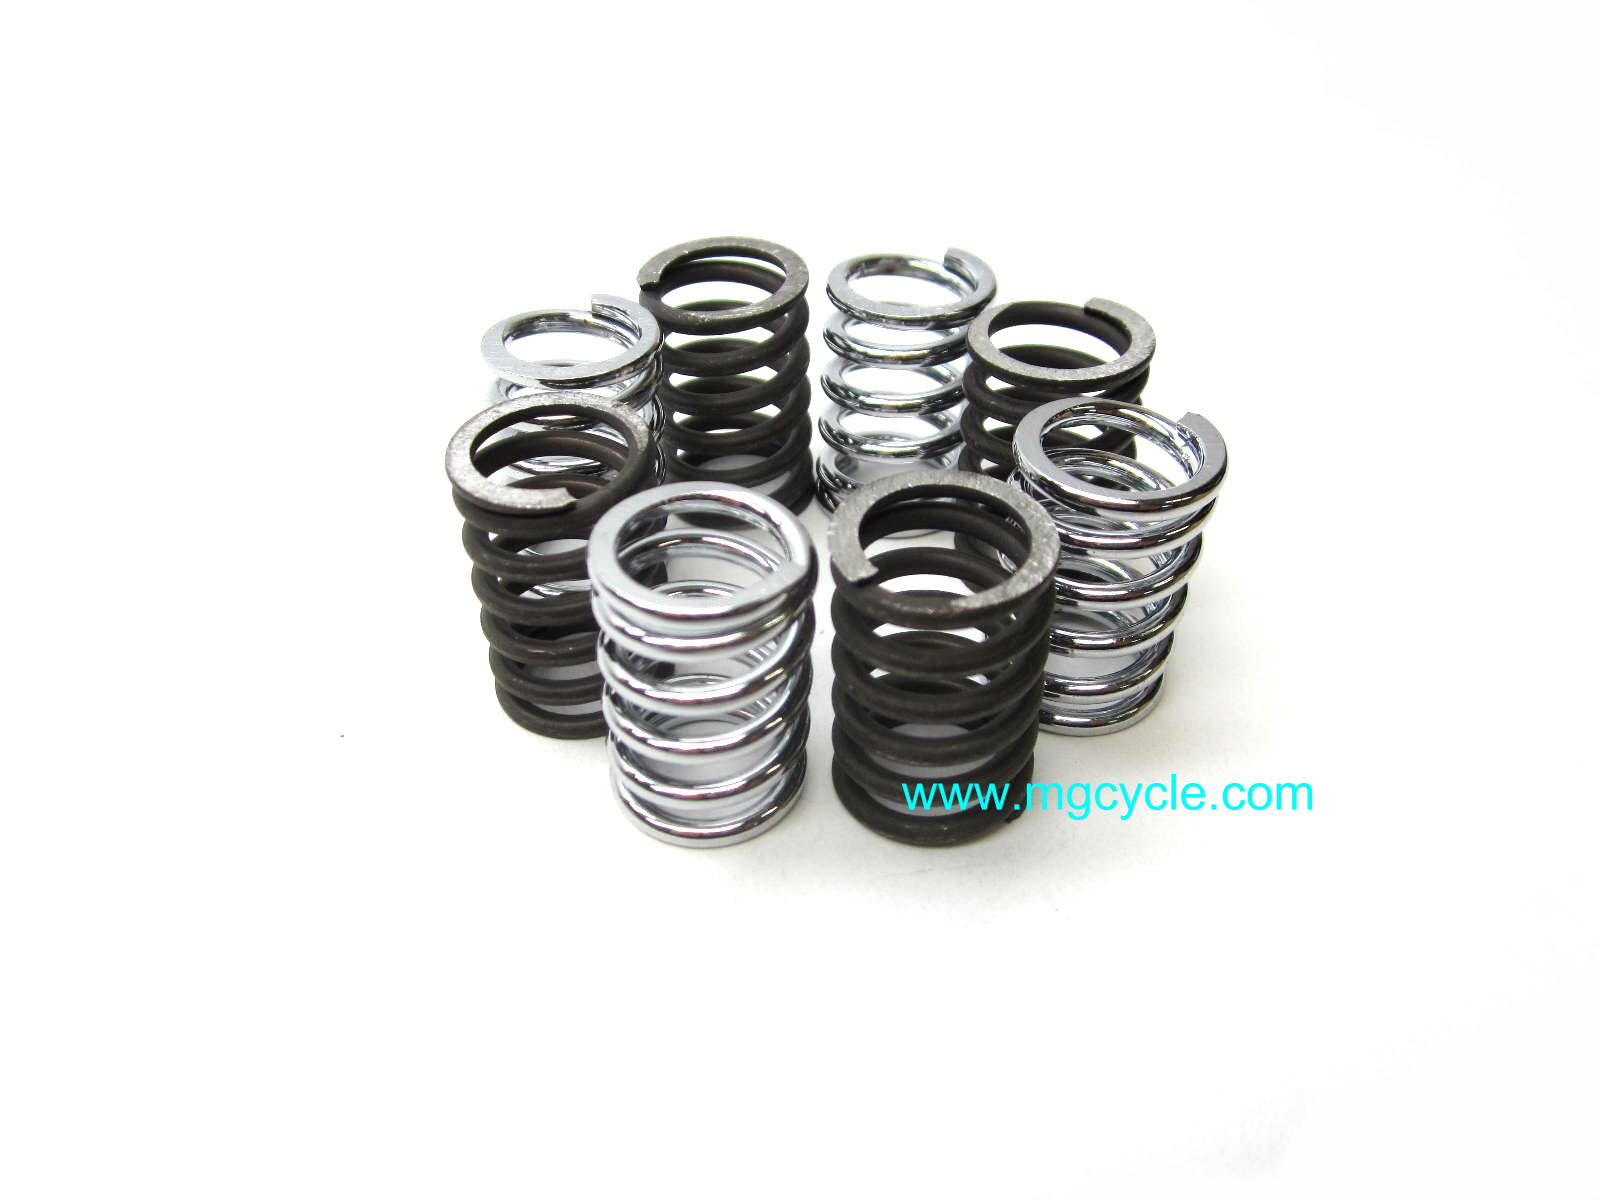 """Wrist Relief"" clutch spring kit"